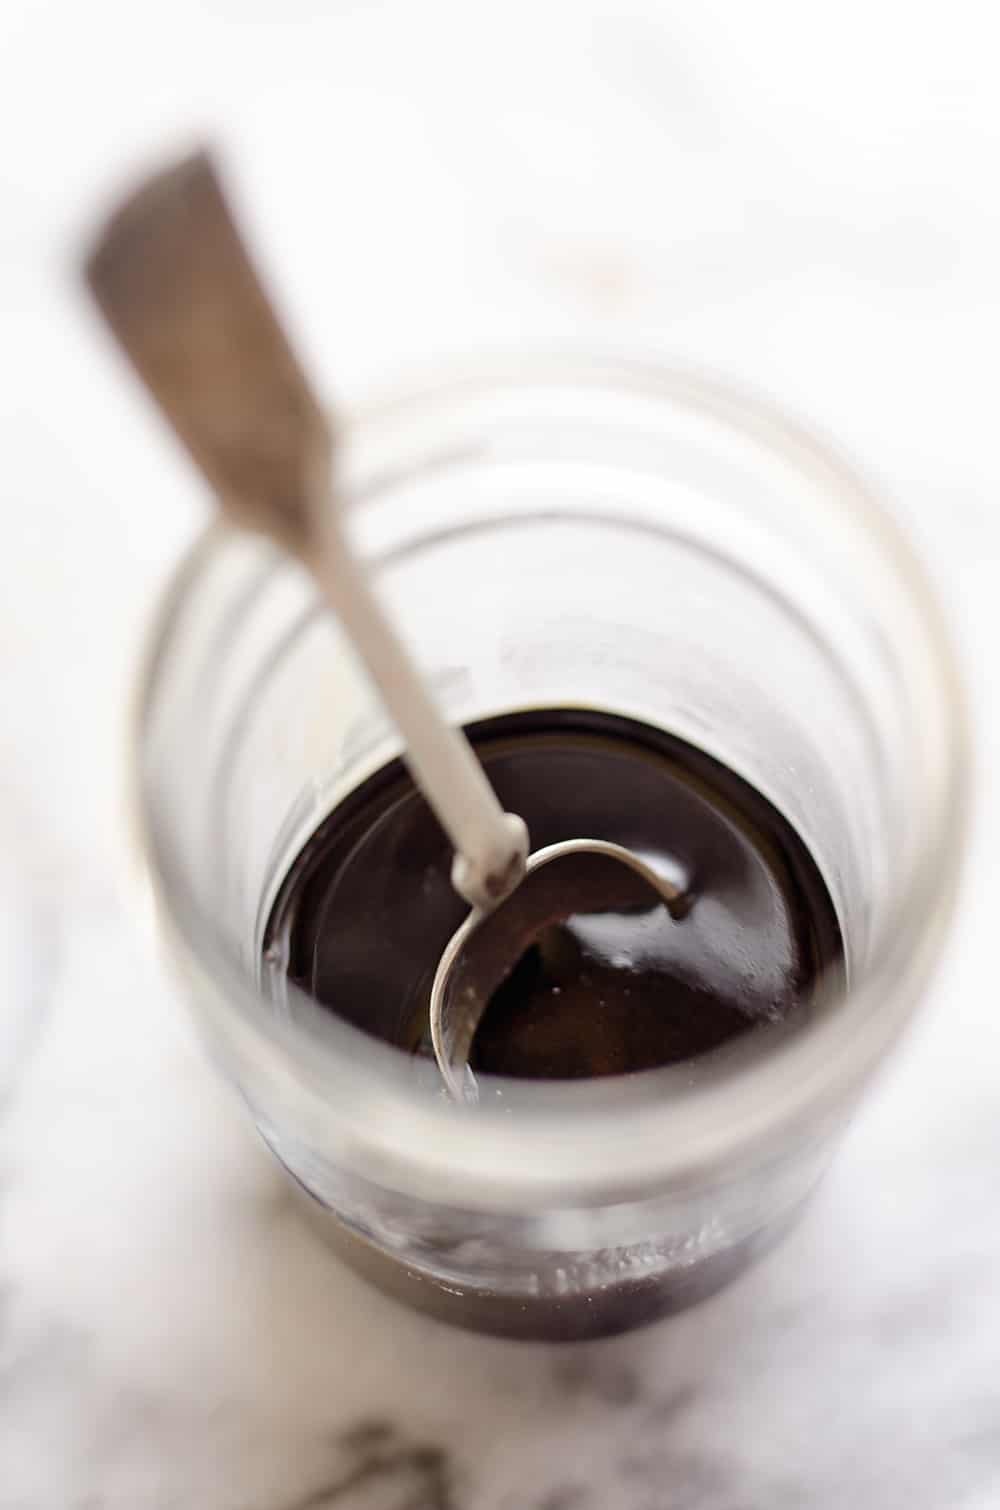 Everyone needs a great Balsamic Reduction Recipe in their repertoire! Whether you want to add a great glaze to meat or dress up a salad with something special, balsamic reduction is a sweet and tangy sauce that adds amazing flavor to any dish.